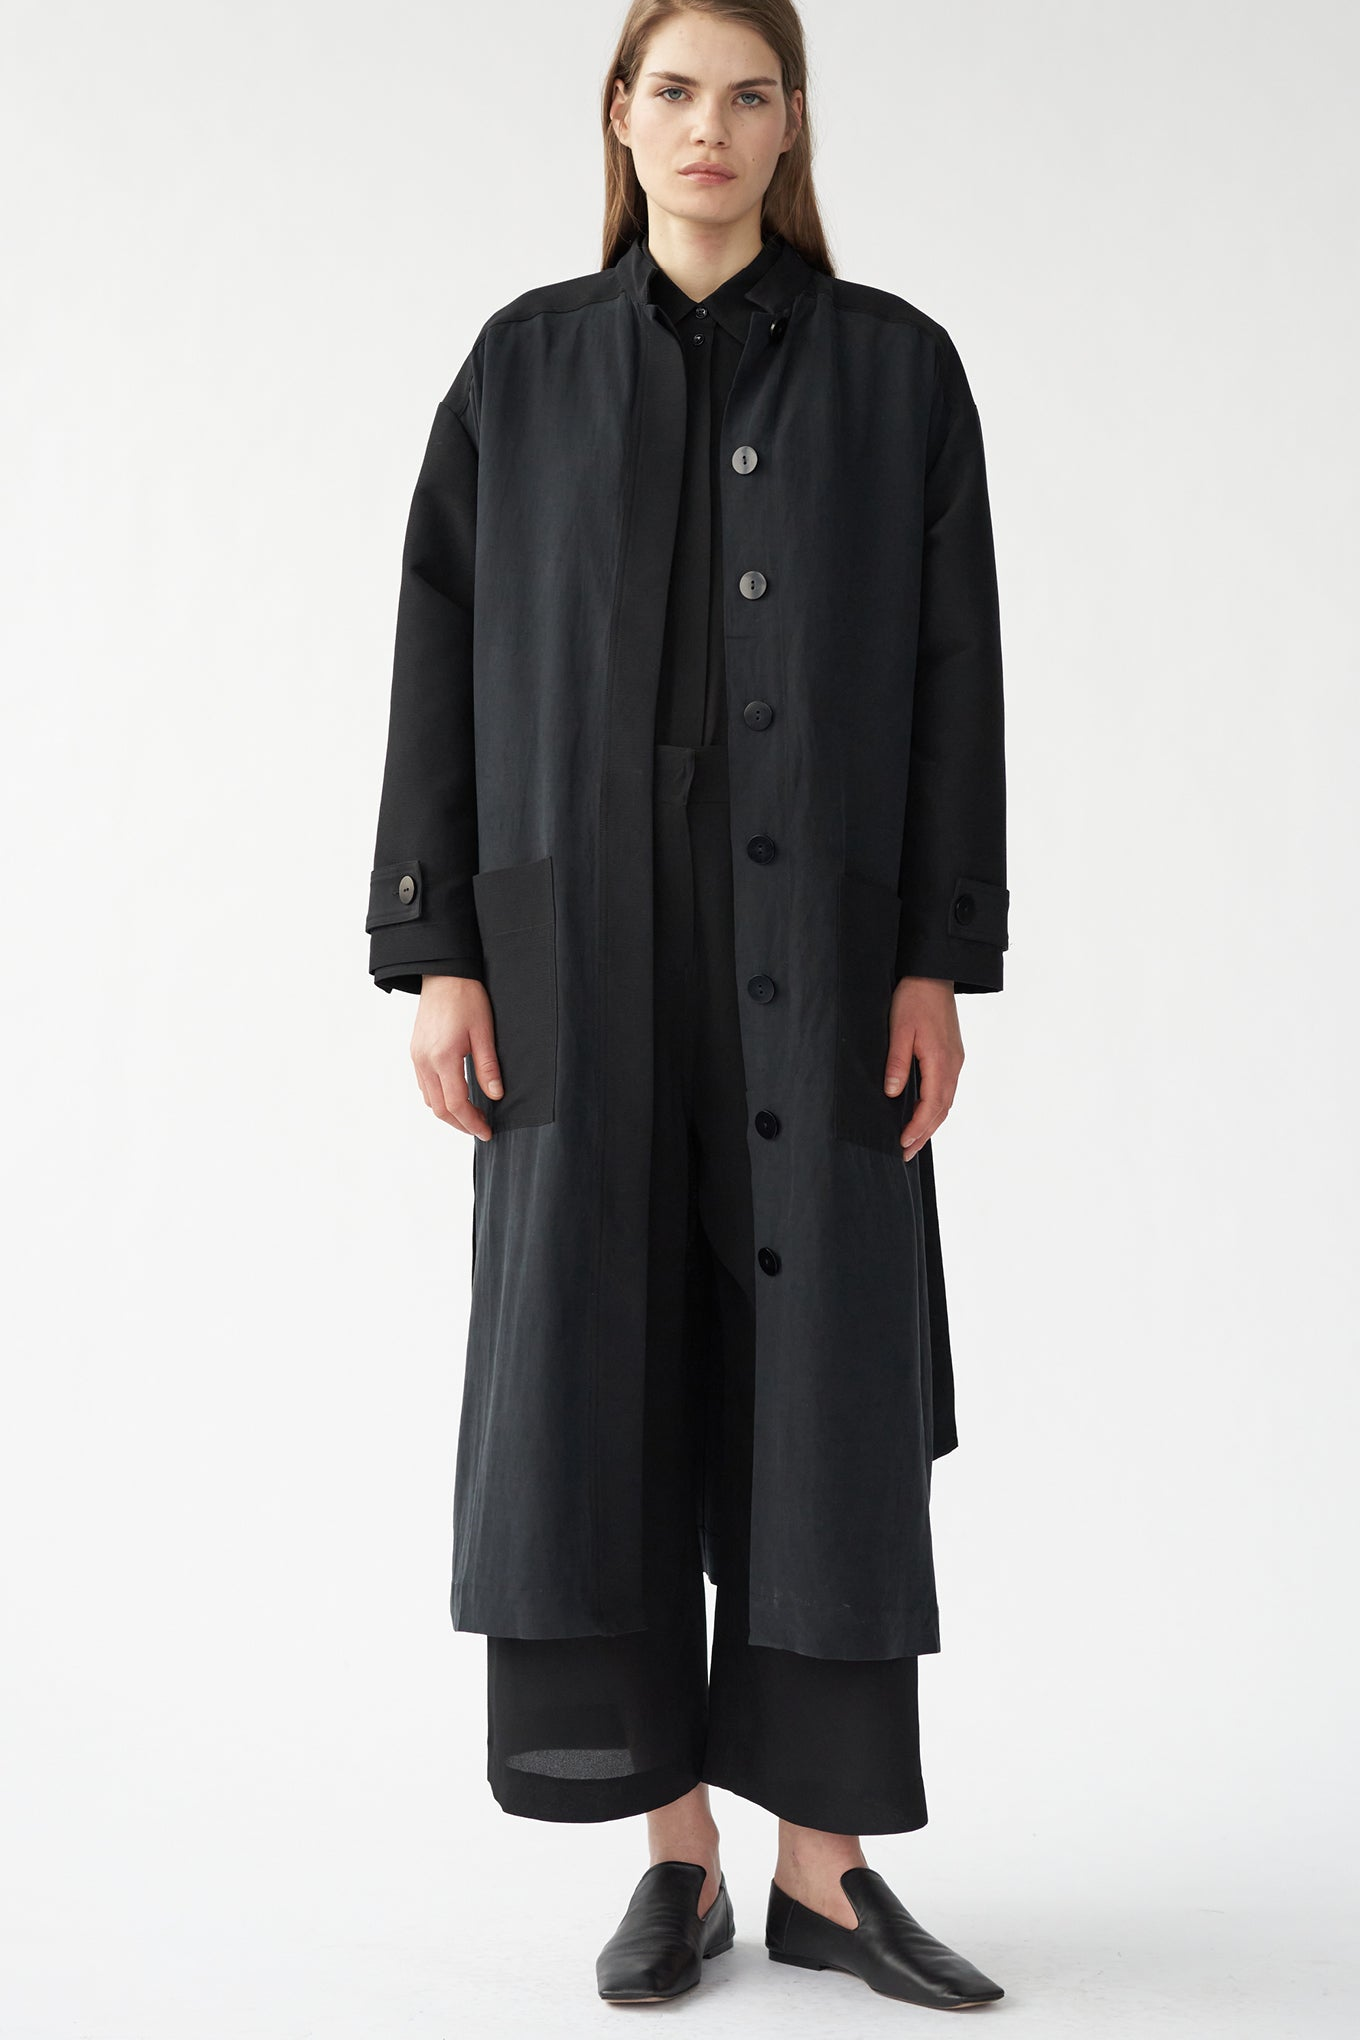 MARGE COAT - BLACK - SILK/LINEN & SILK/COTTON